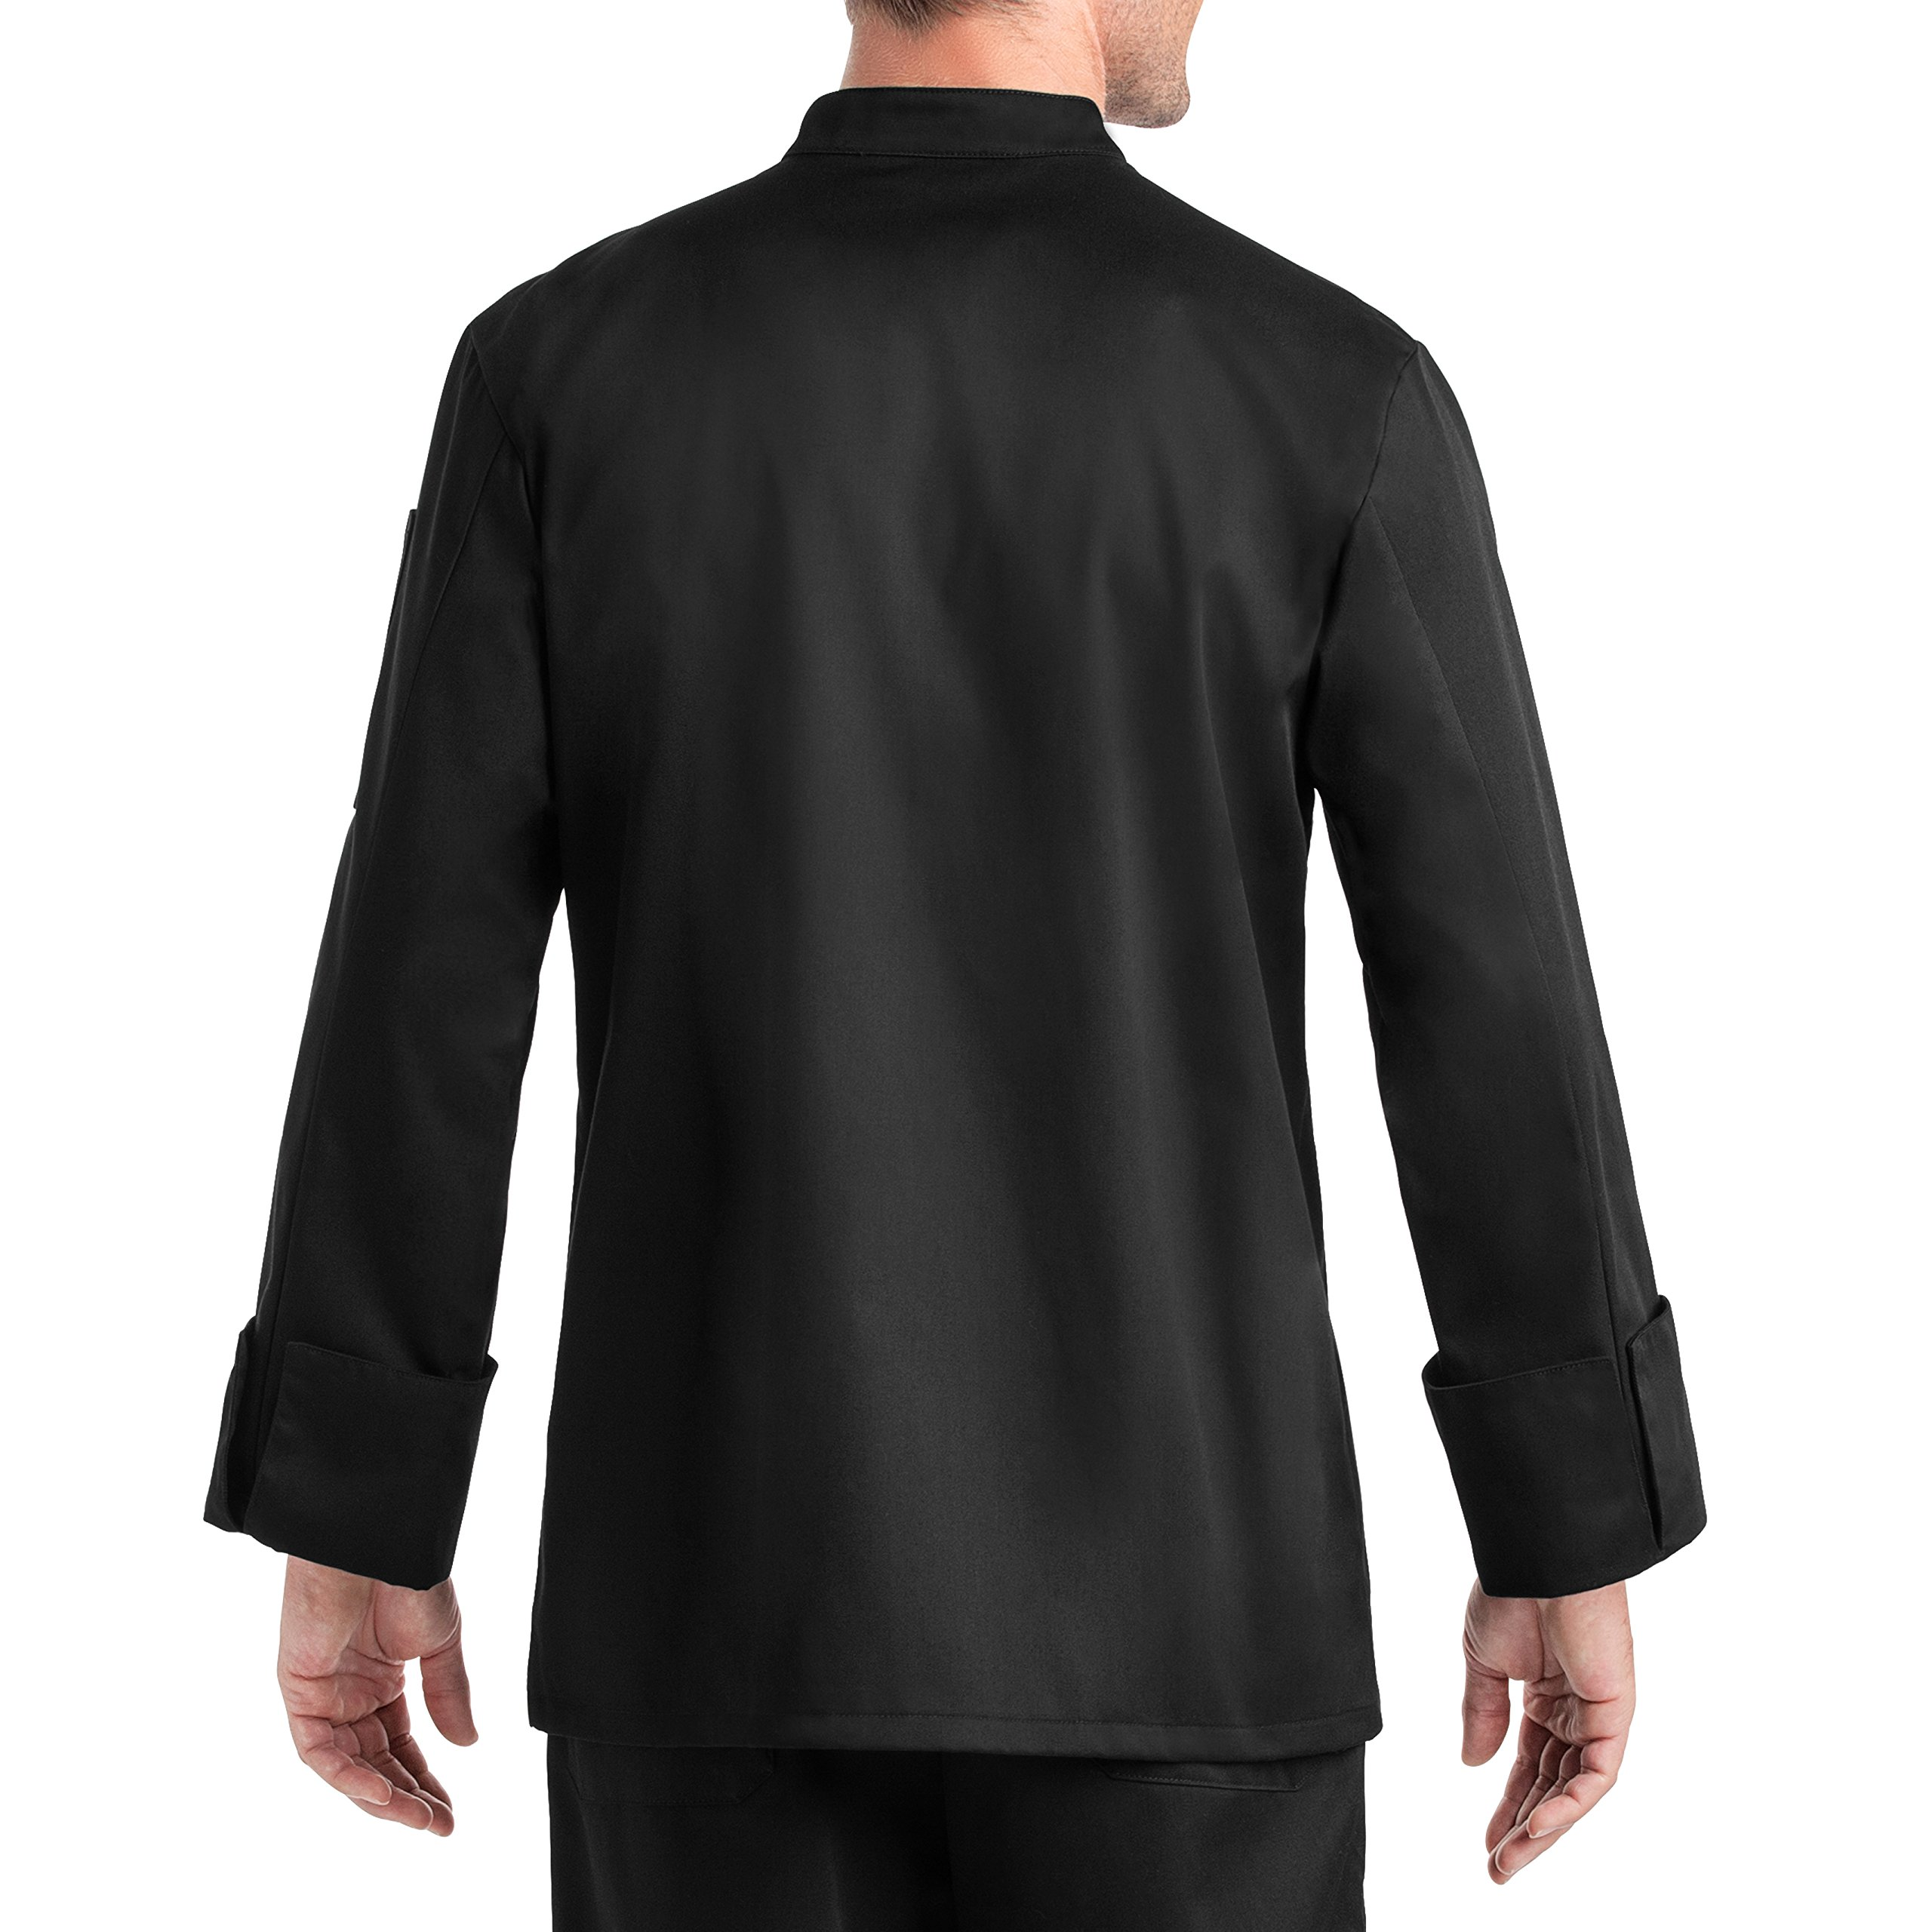 On The Line Men's Long Sleeve Chef Coat (S-2X, 2 Colors) by On The Line (Image #3)